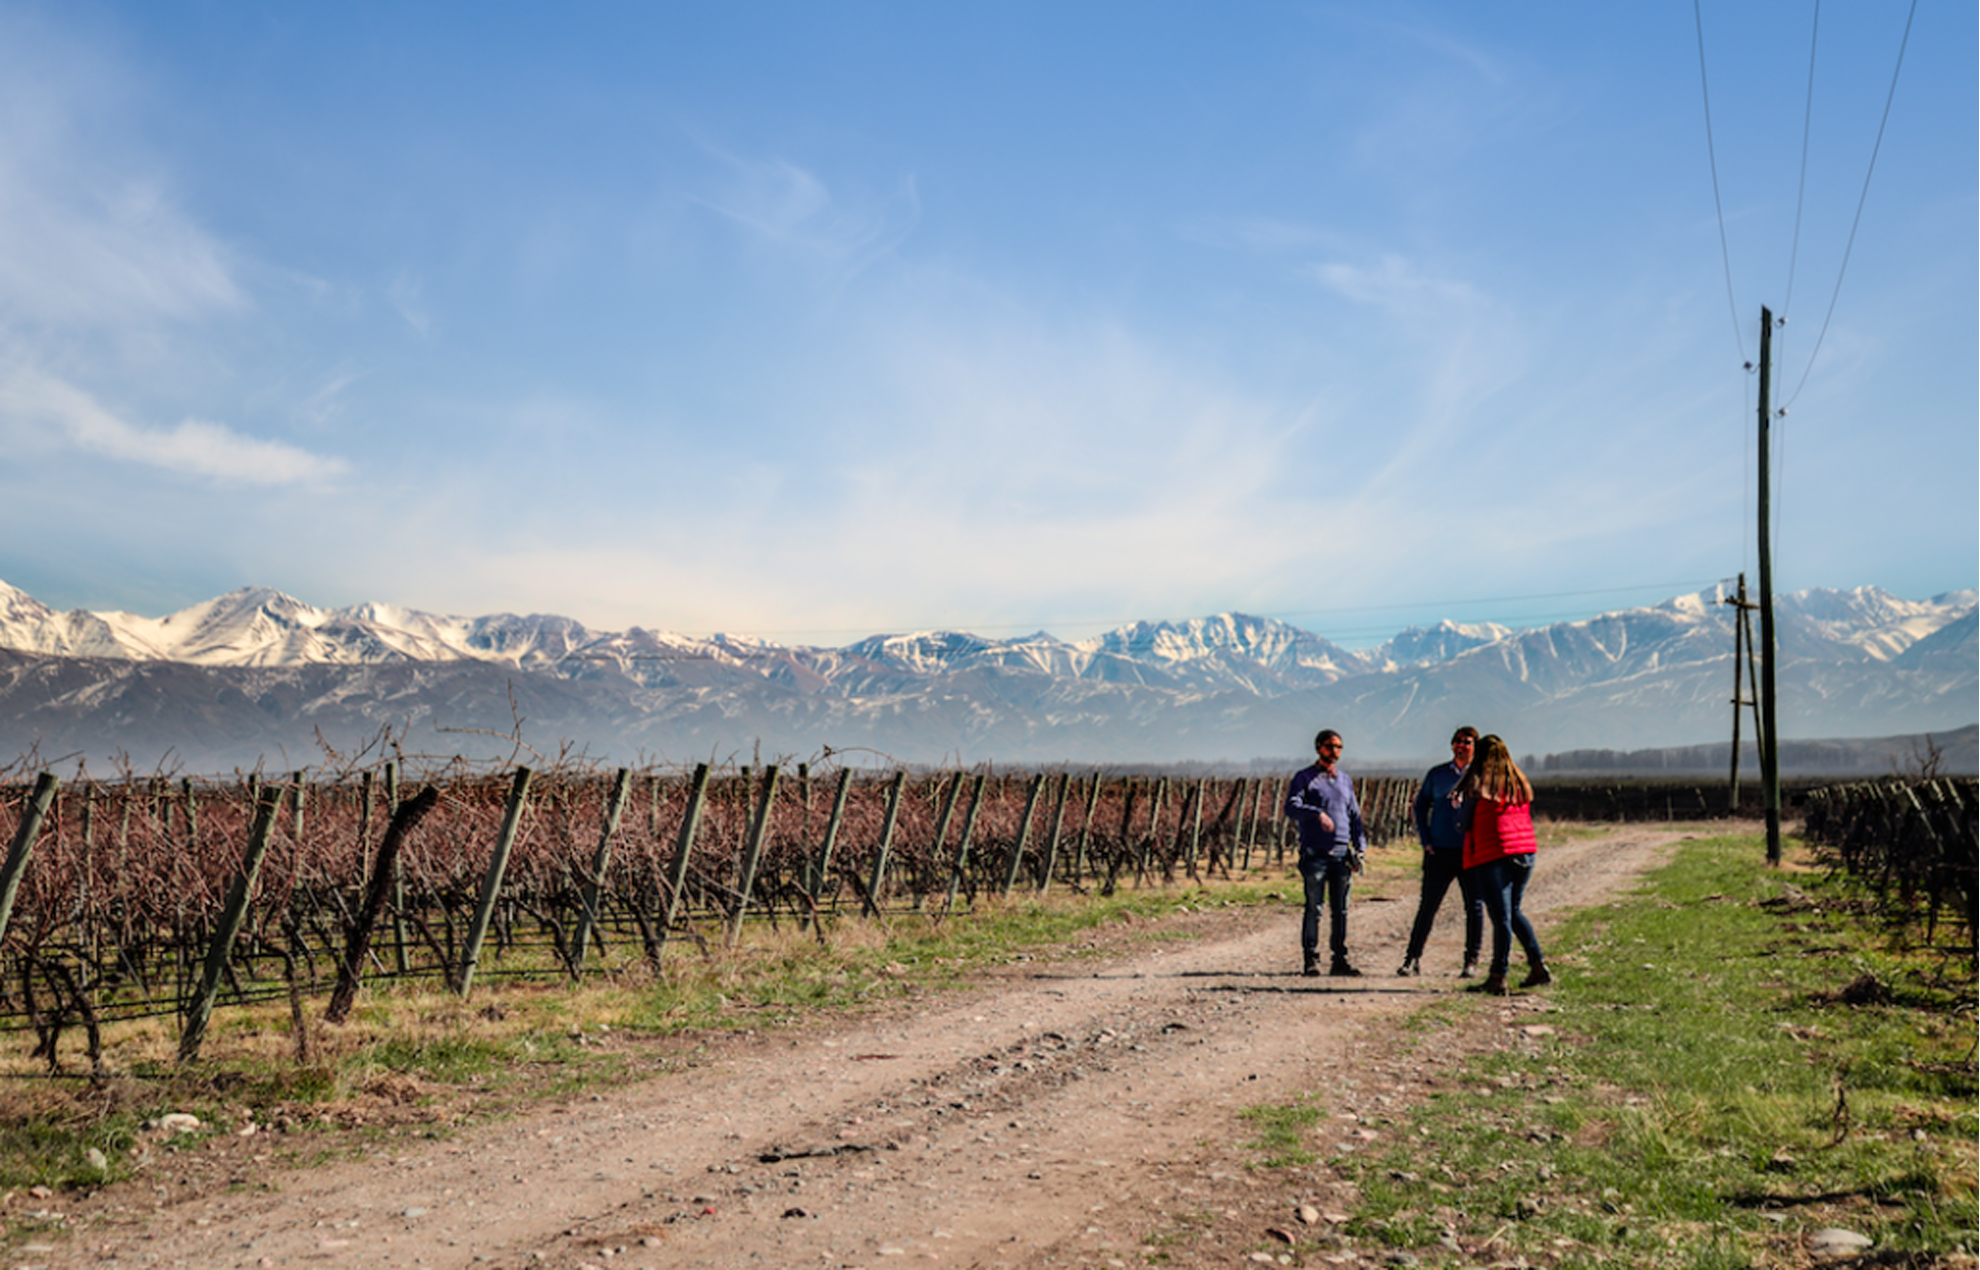 Landscape view of grape vine rows and people gathered with a mountain range background.